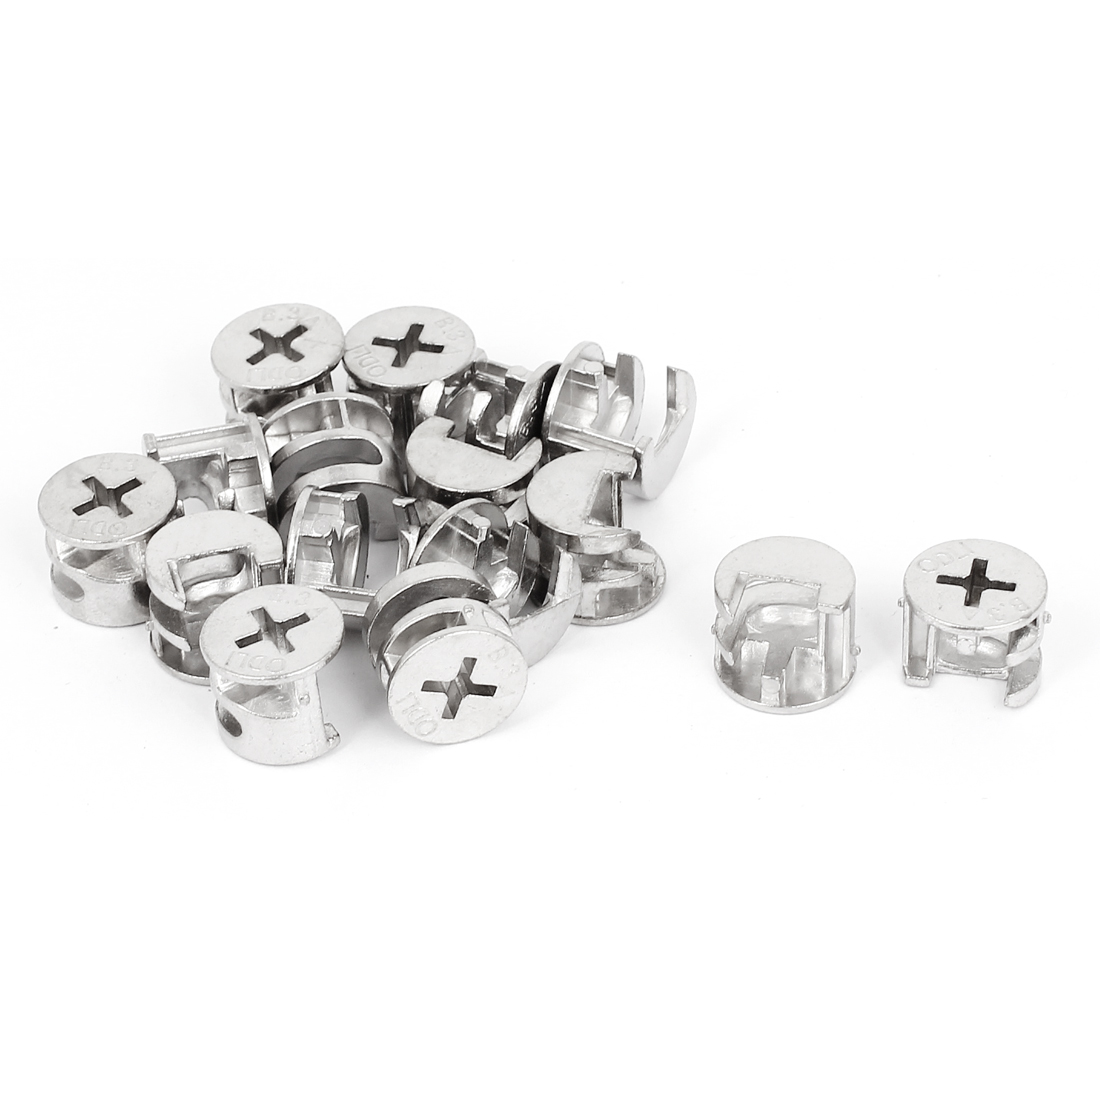 15mmx12mm Cross Head  Metal Cabinet Furniture Connect Cam Fittings 15pcs